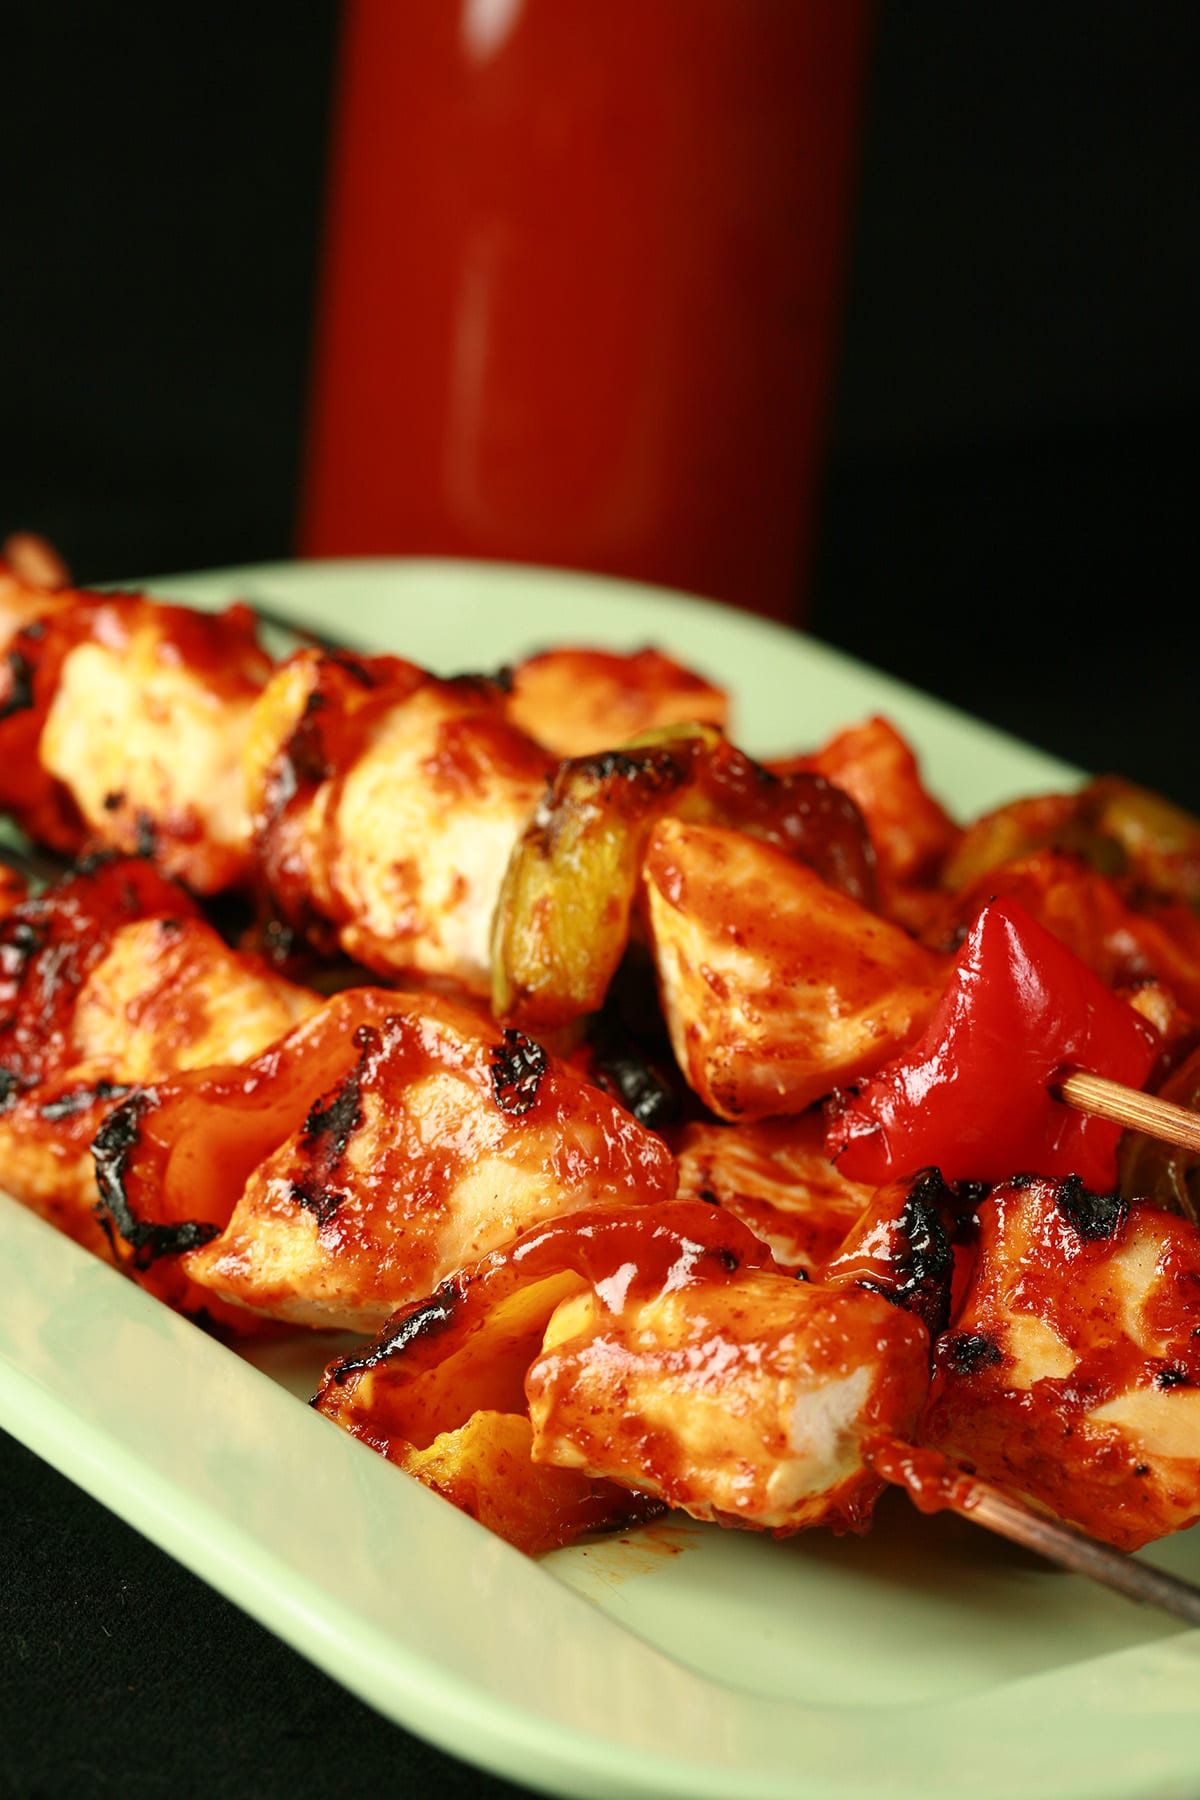 A plate of grilled chicken skewers, with replica Honey Dijon Diana Sauce spread on them. A bottle of the sauce rests behind the plate of food.